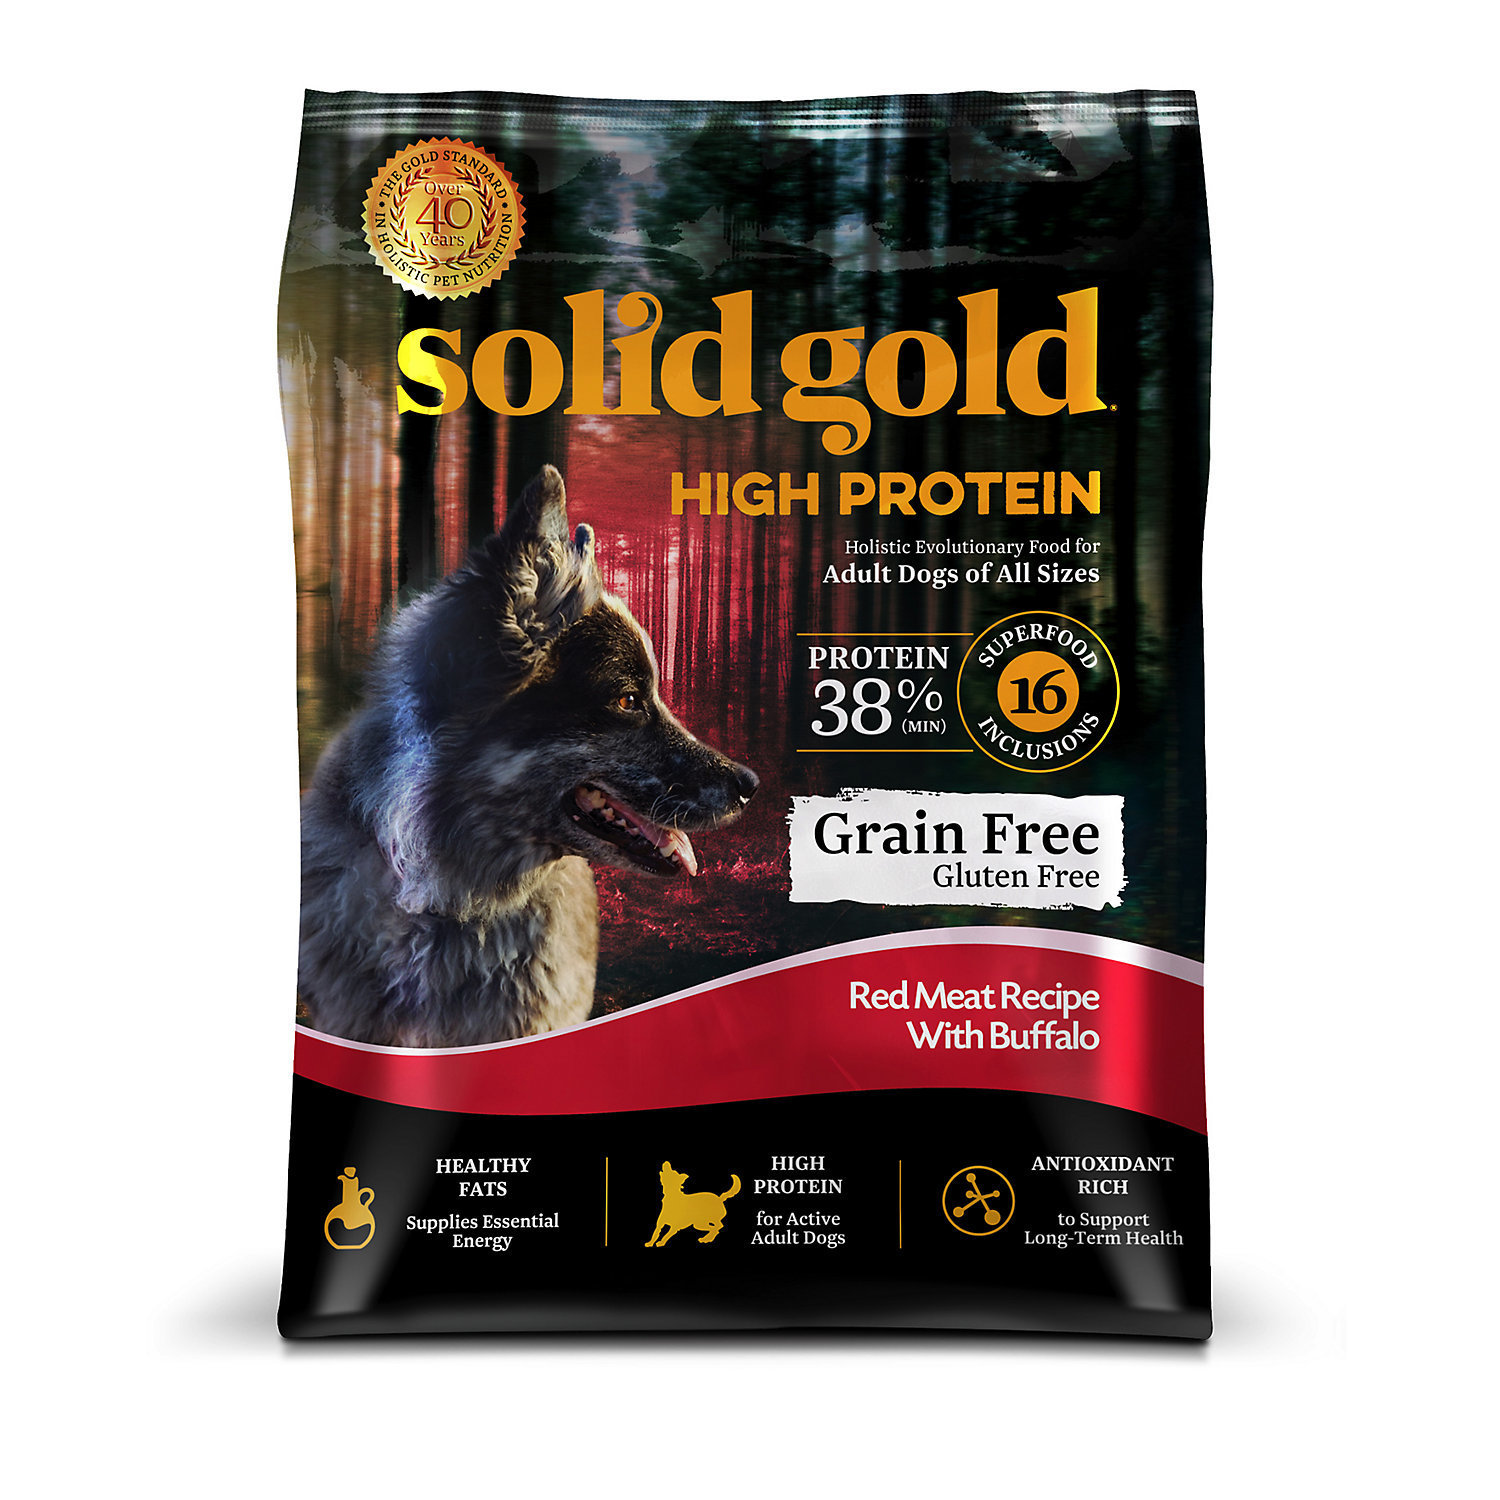 Solid Gold High Protein Grain and Gluten Free Dry Dog Food, Red Meat and Buffalo 22 LBS. (12/18) (A.M8)